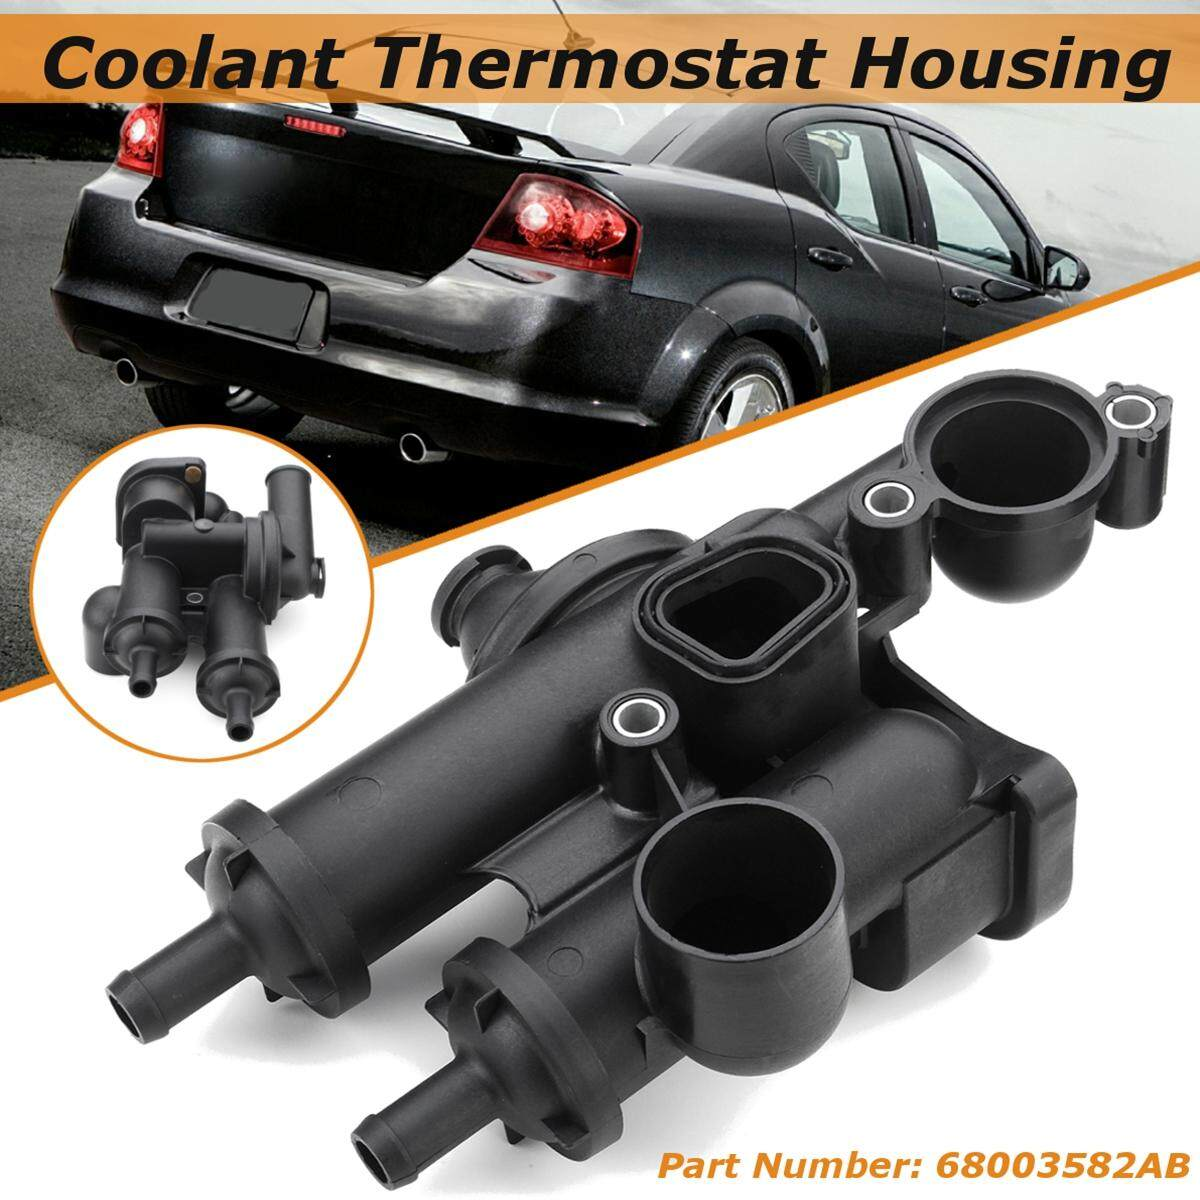 2016 Jeep Patriot Remote Engine Coolant Thermostat Housing For Dodge Avenger Journey Compass